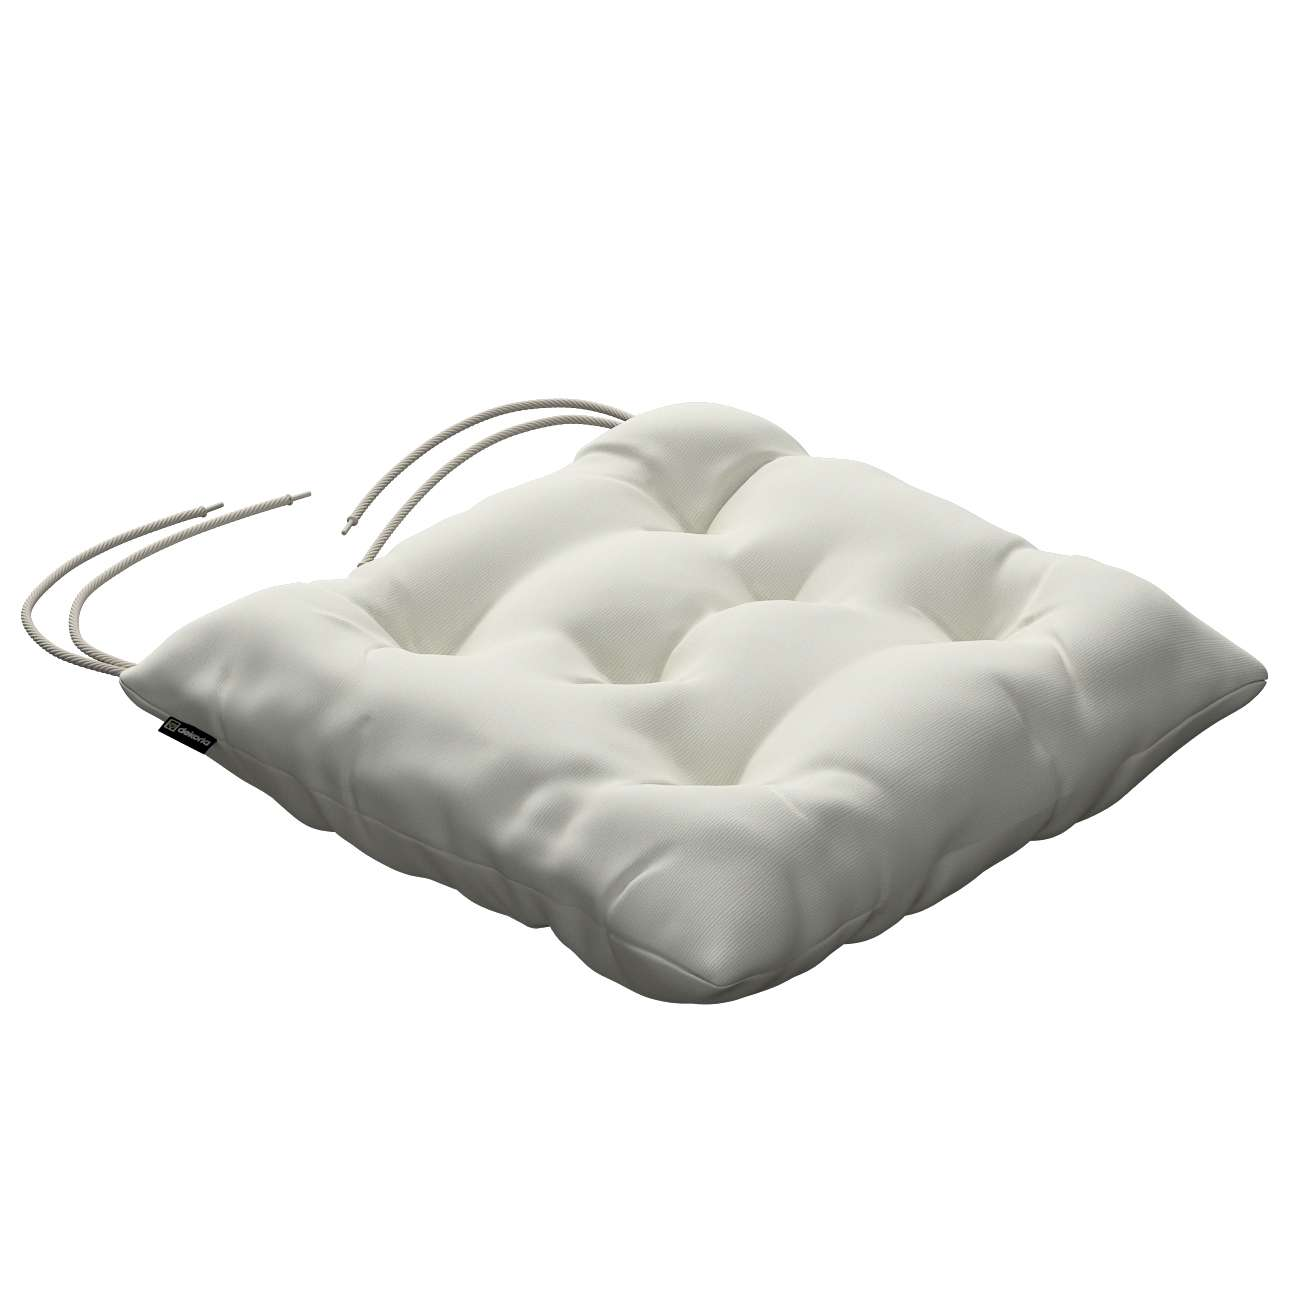 Jacek seat pad with ties 40 x 40 x 8 cm (16 x 16 x 3 inch) in collection Jupiter, fabric: 127-00